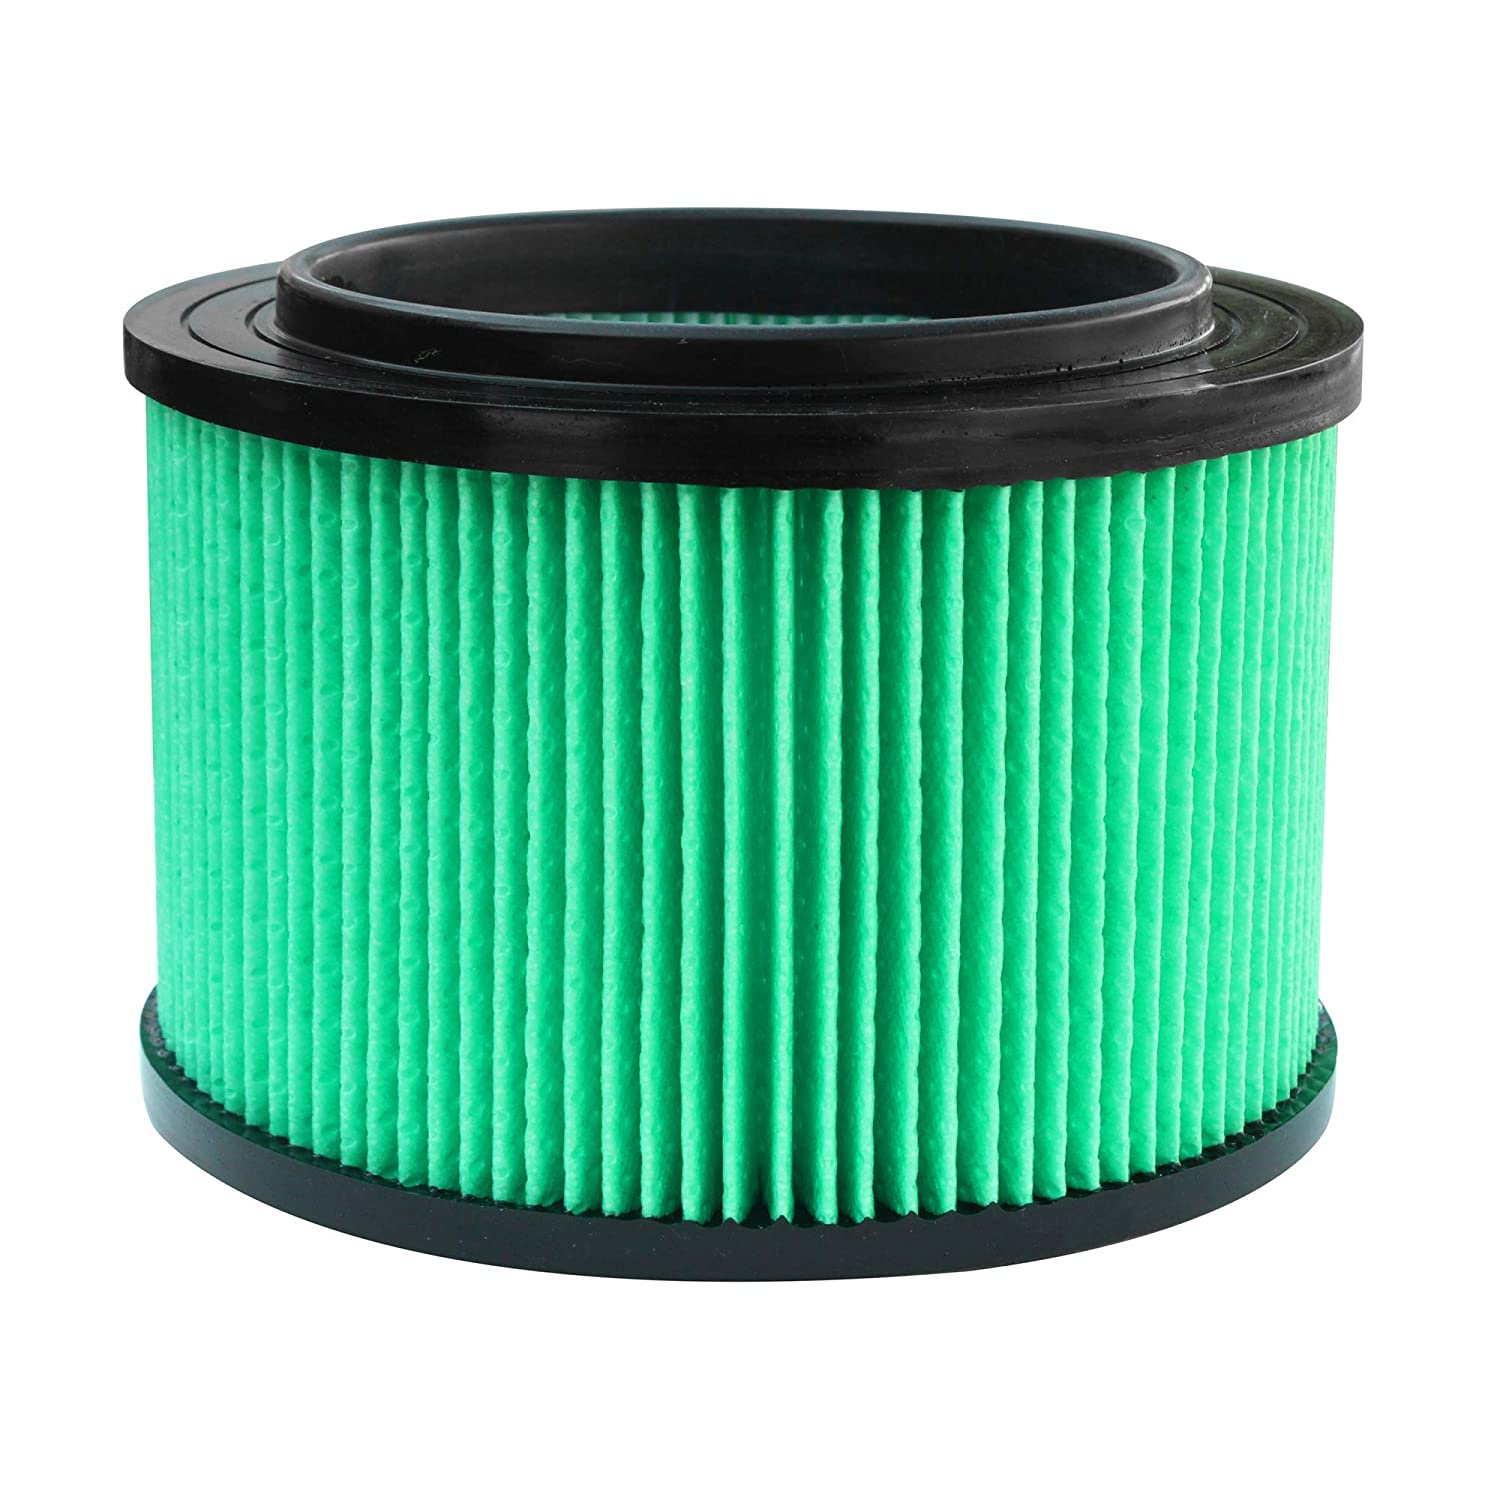 1 Pack 16950 Replacement Filter for Craftsman 9-16950 HEPA Material Wet//Dry Vac fit 3 /& 4 Gallon